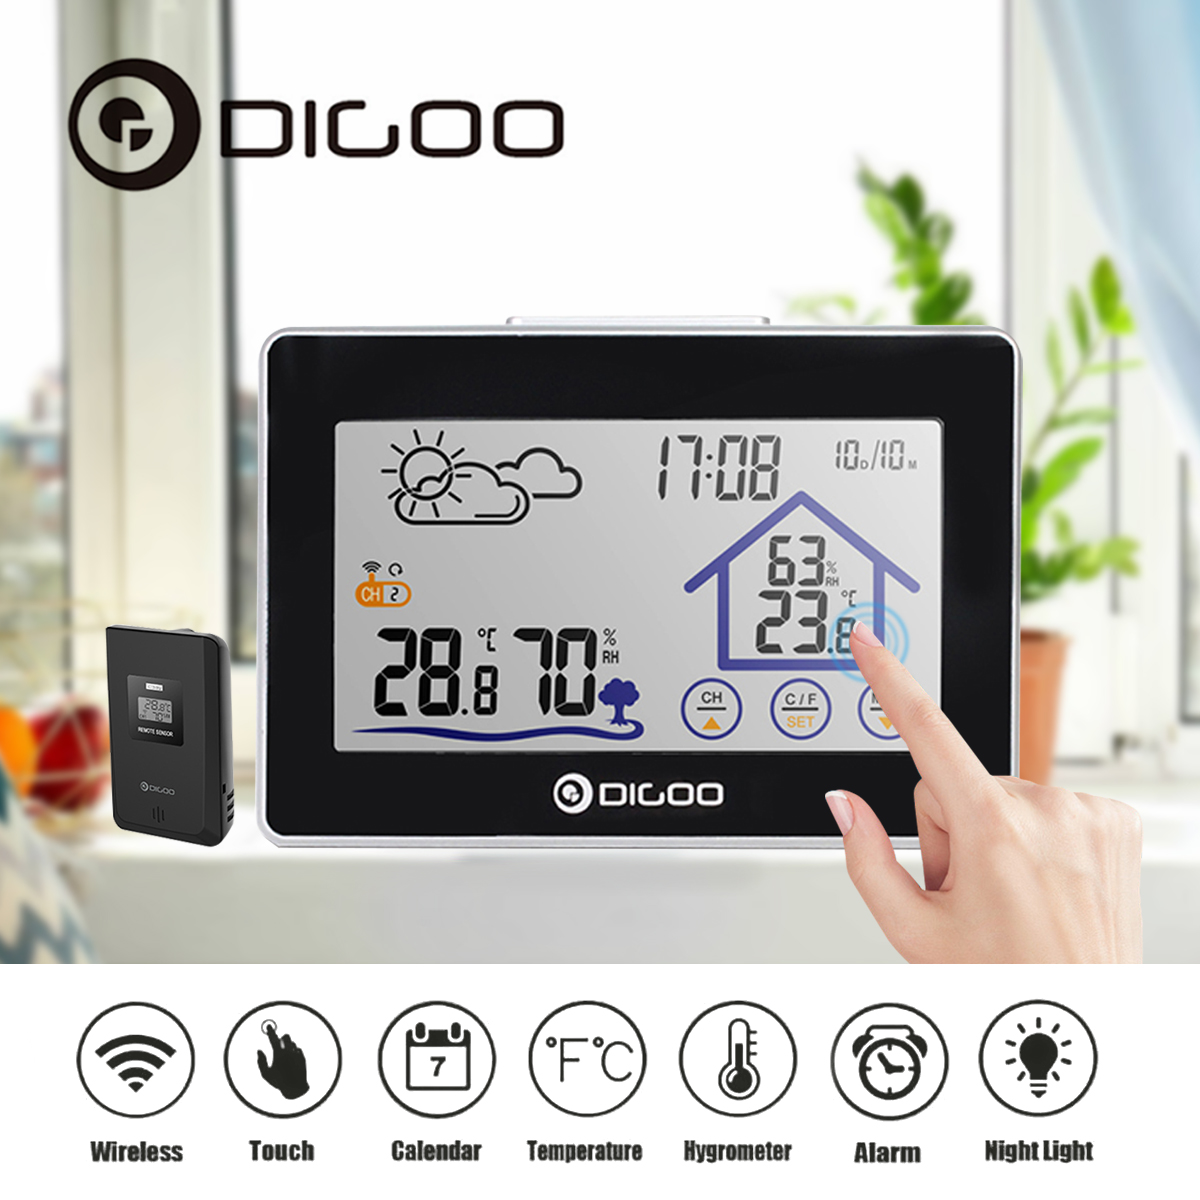 Digoo Wireless Weather Station LED Screen Wireless Weather Forecast Station Back-light Time Date Display Humidity Temperature Meter Monitor Thermometer Hygrometer Clock